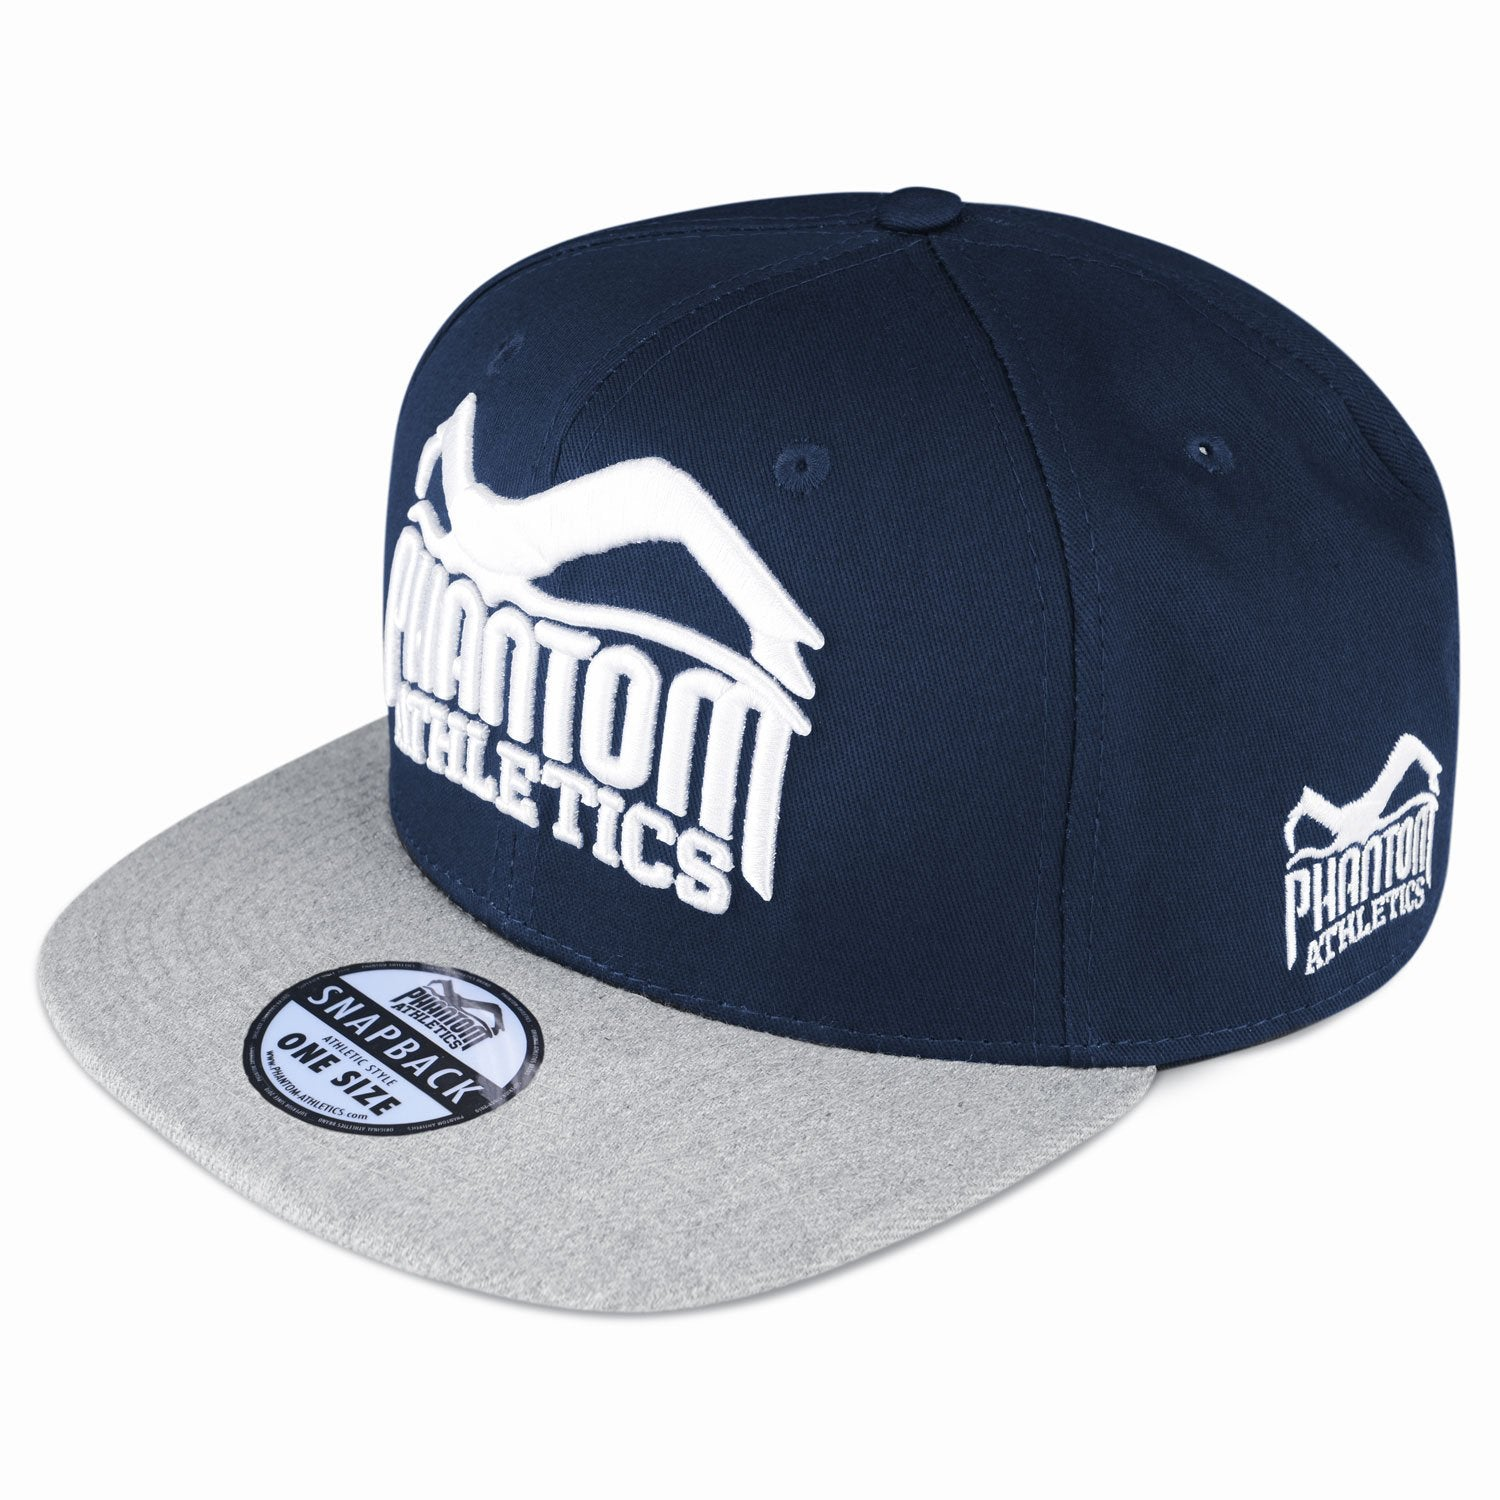 1f79384e304 Phantom Athletics Cap Team Kappe Snapback Hat Logo Blue Blau Navy